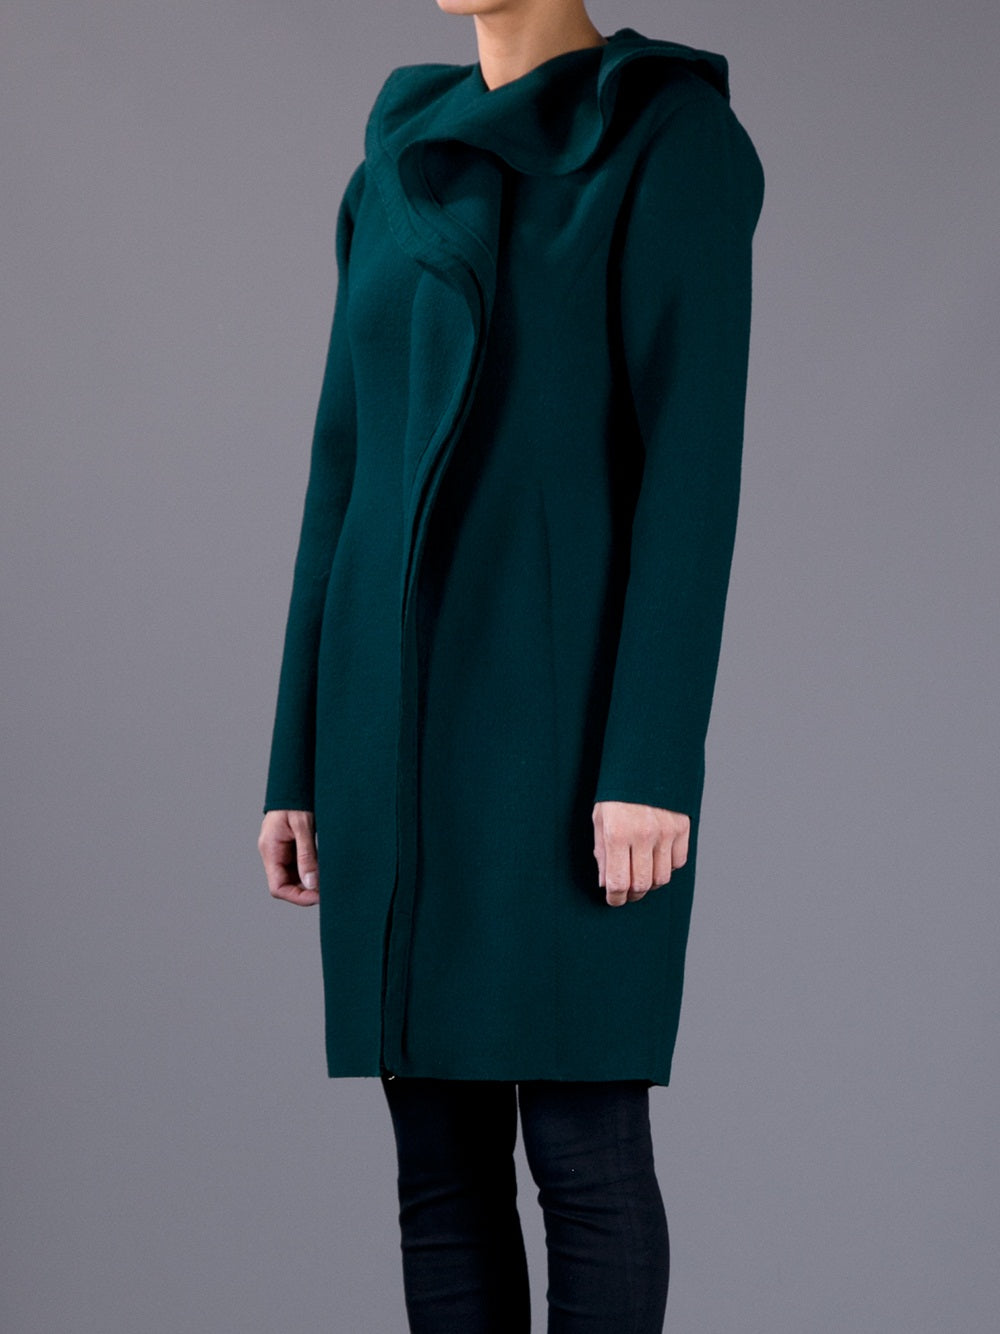 LANVIN WOMEN'S GREEN OVERSIZED RUFFLE COLLAR COAT - SIZE EU 40